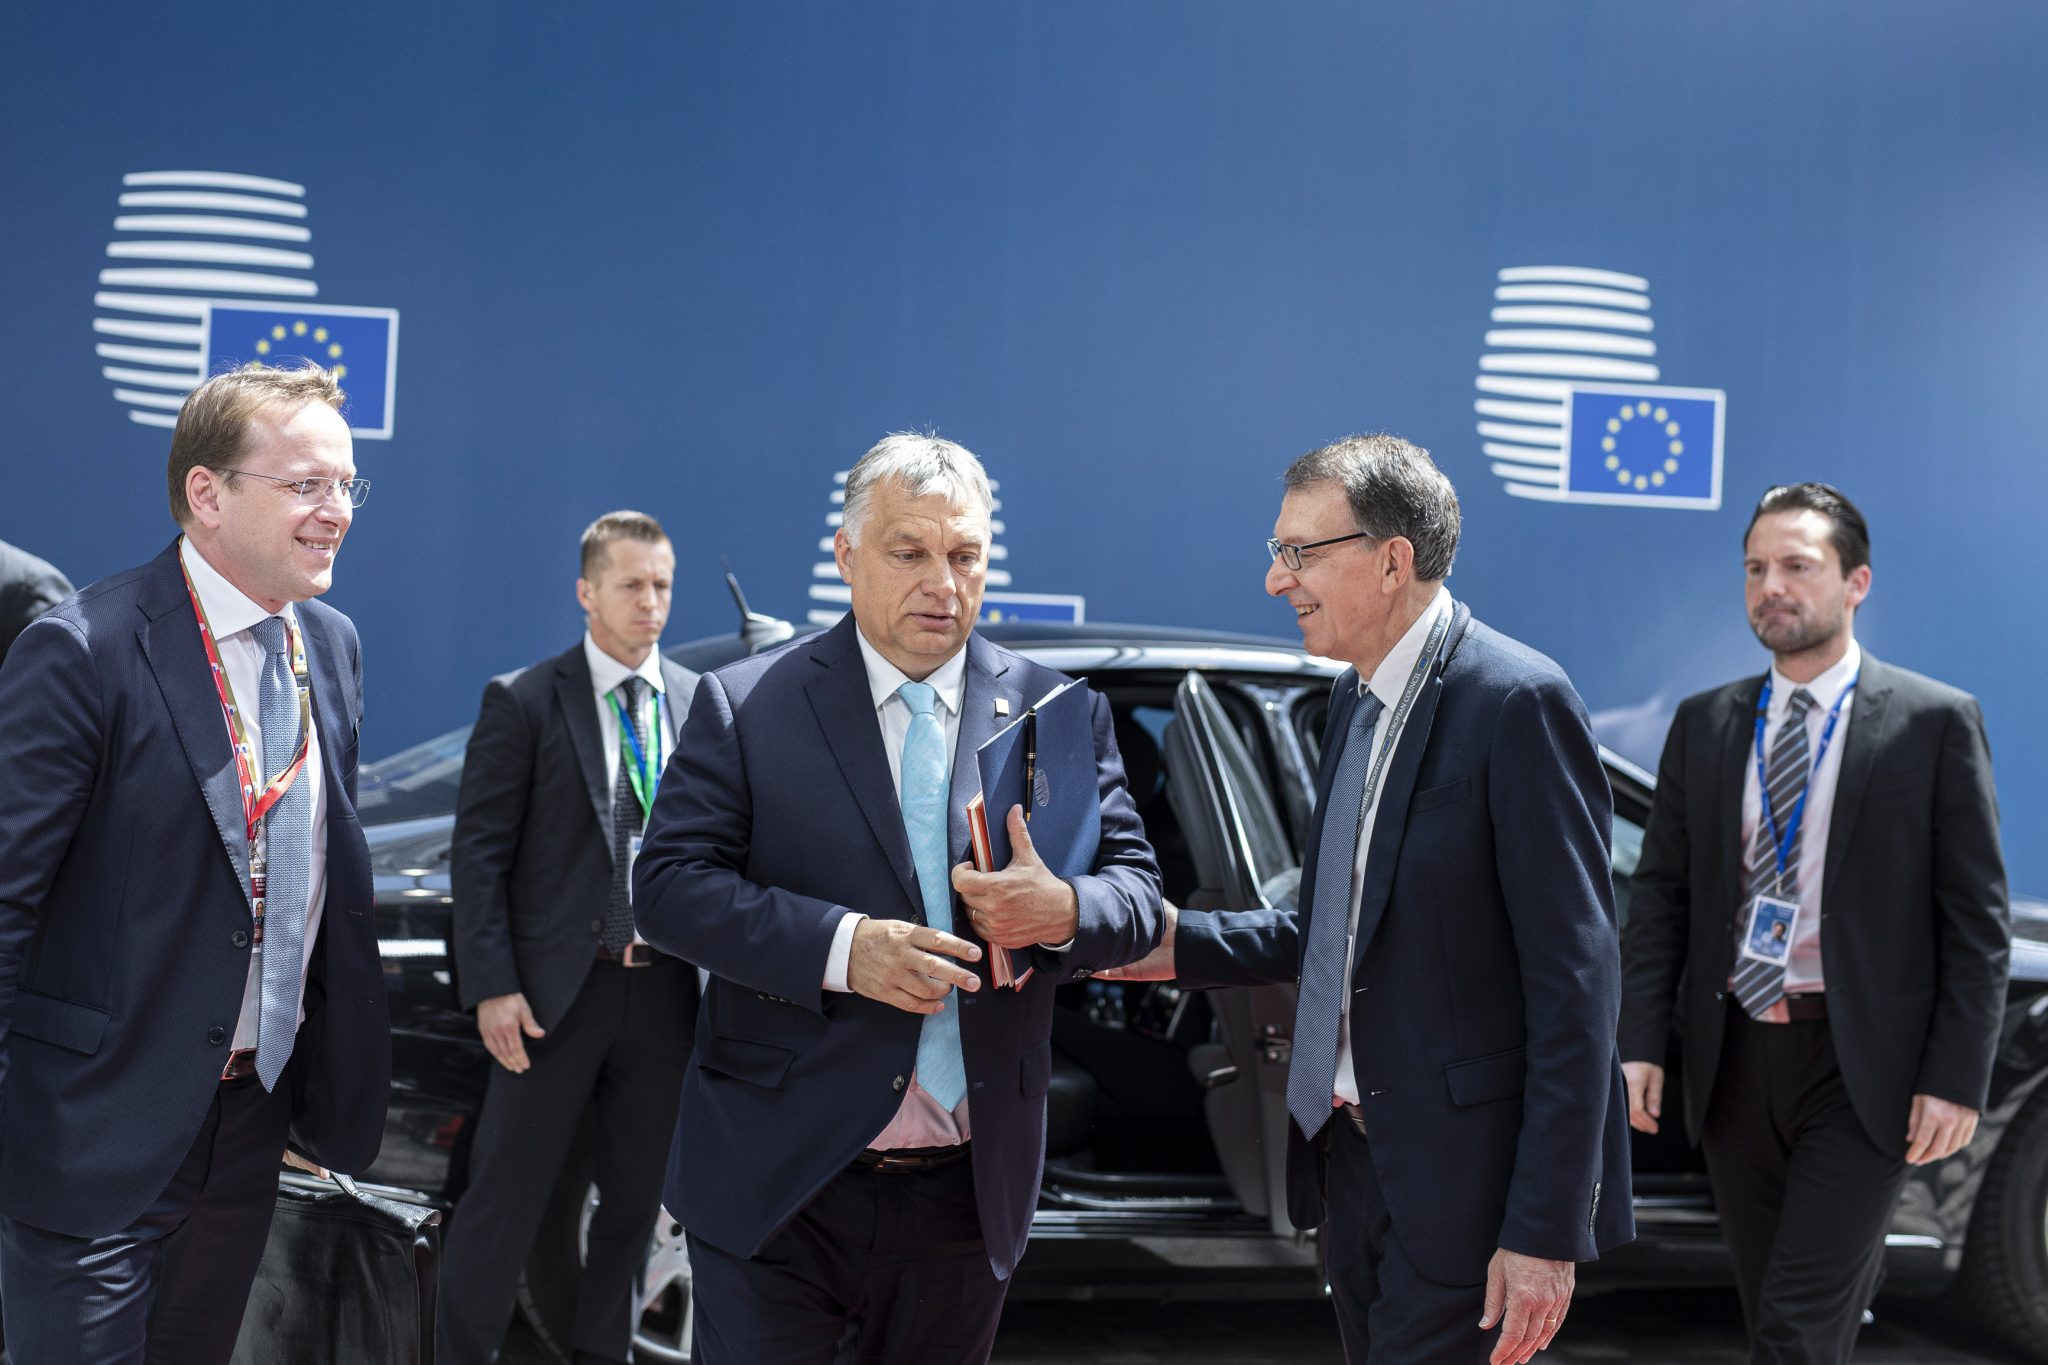 Orbán on Timmermans EC Nomination: 'Soros' Man, Who Can't Accept Different Views' post's picture